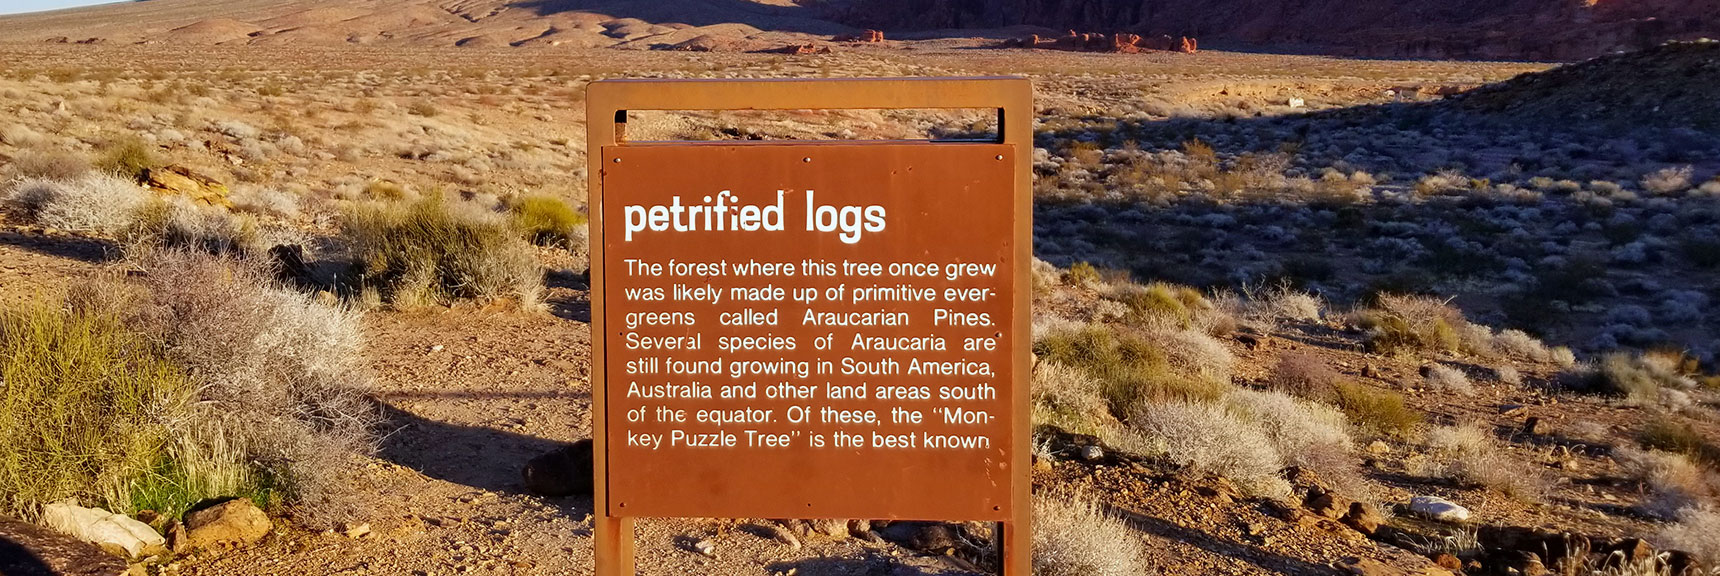 Interpretive Sign Along Petrified Logs Loop in Valley of Fire State Park, Nevada